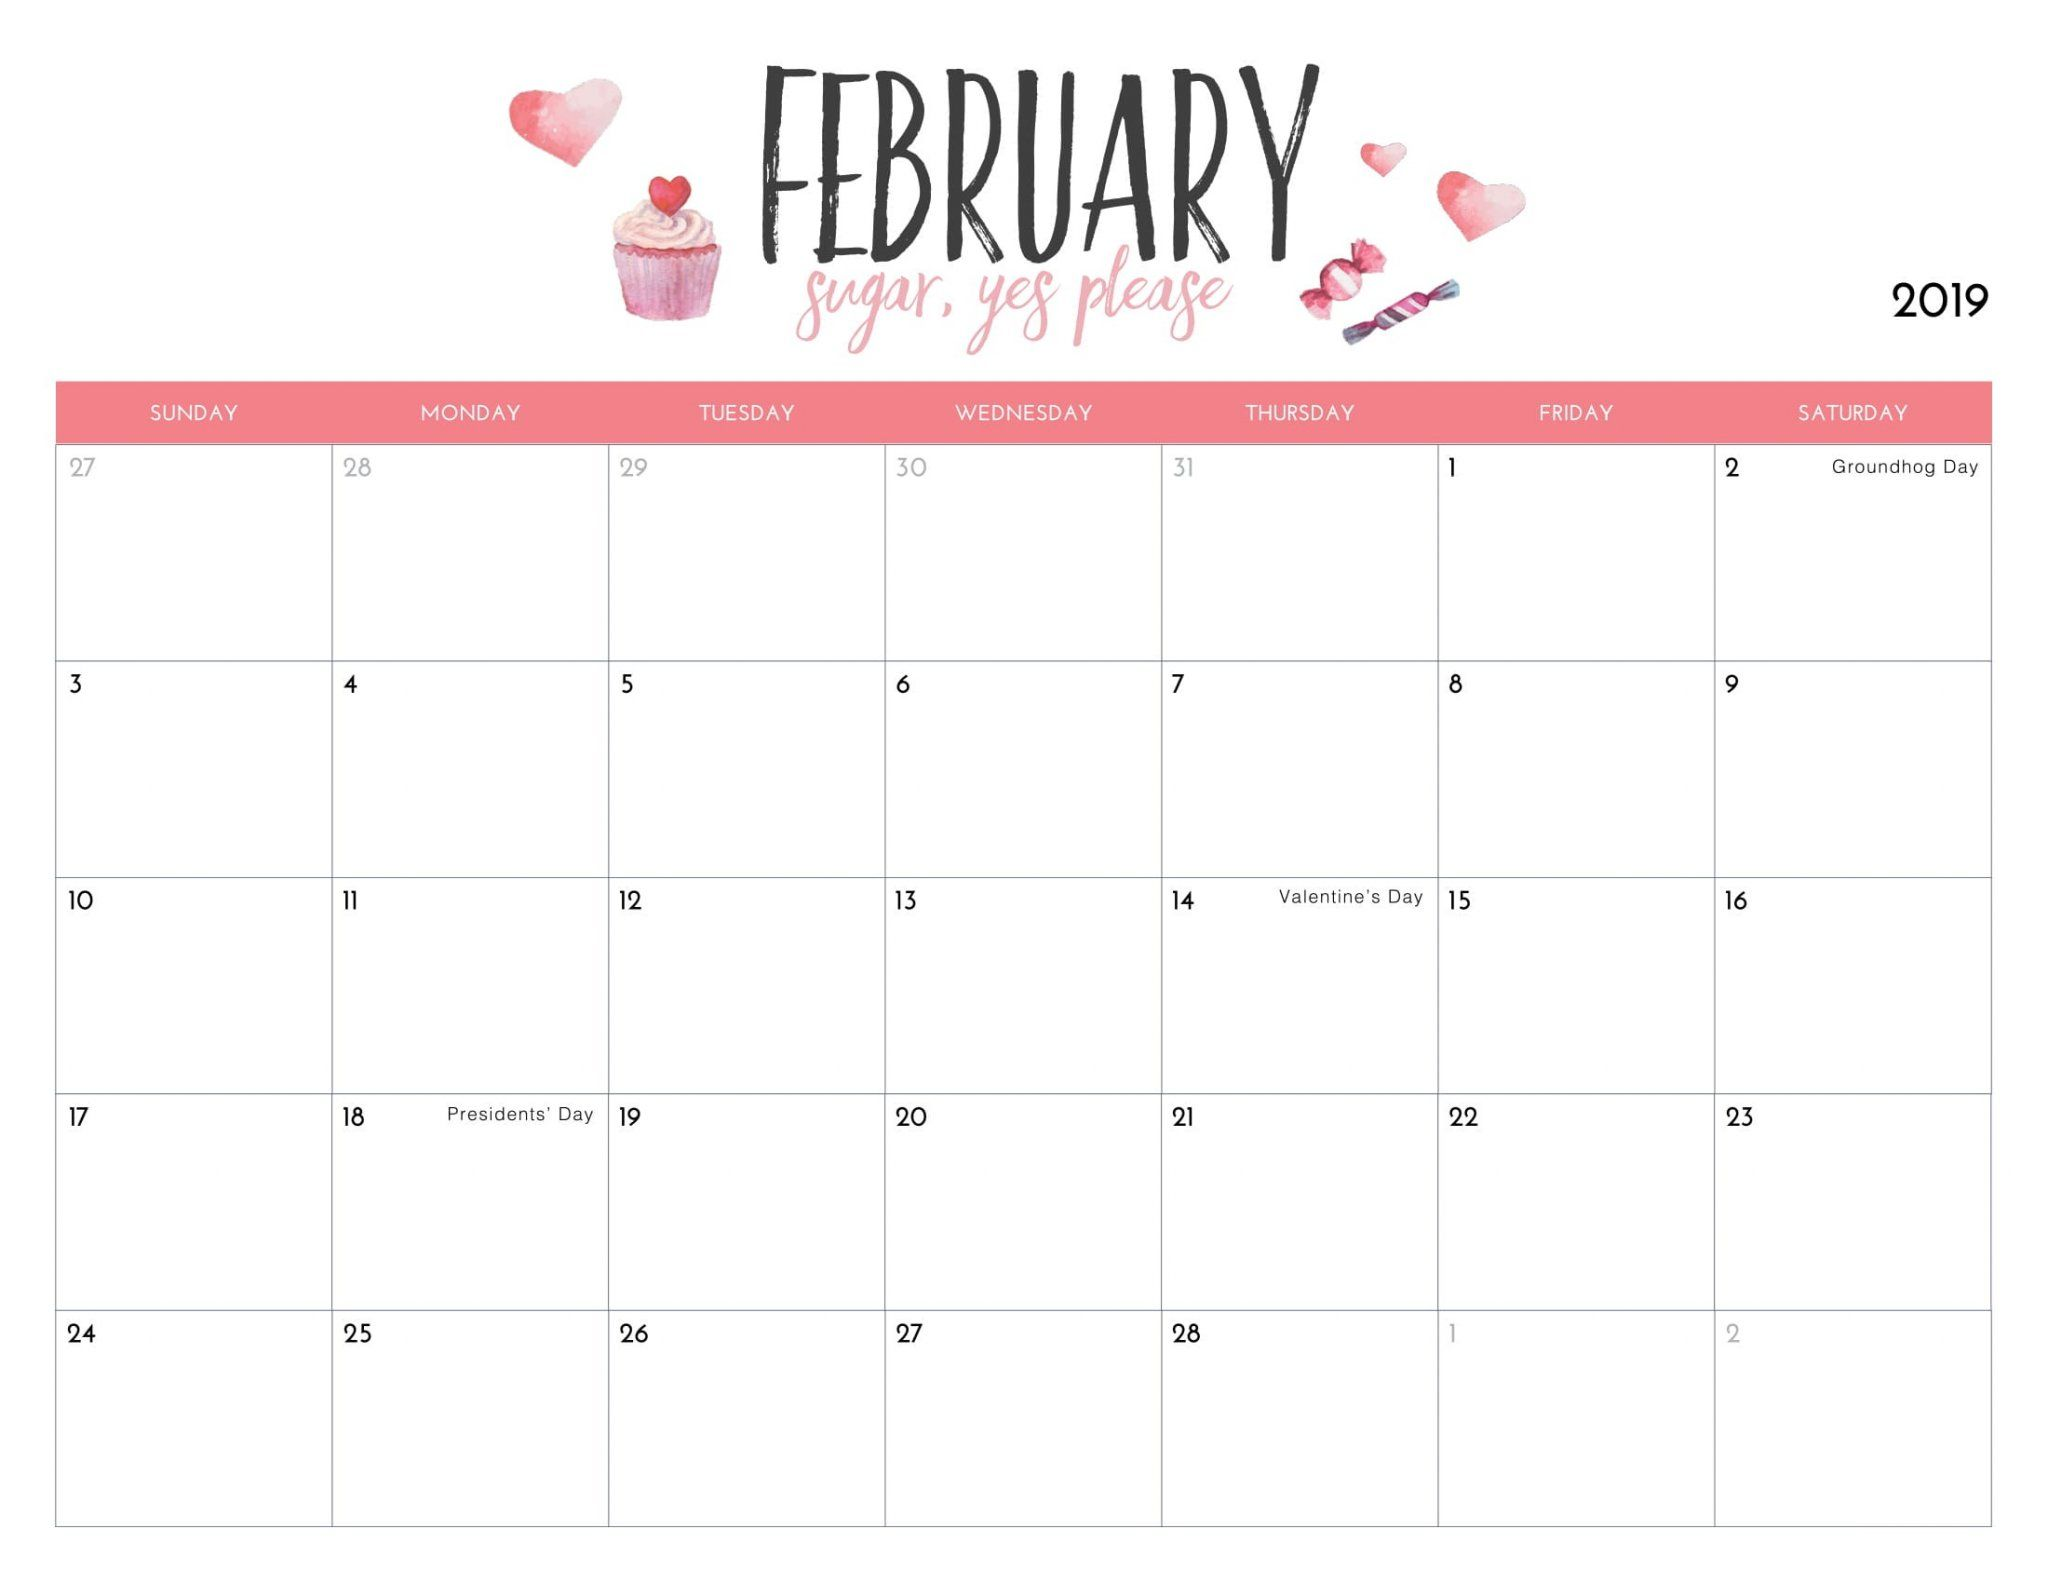 This is an image of Adorable Free Printable Calendars Feb 2020